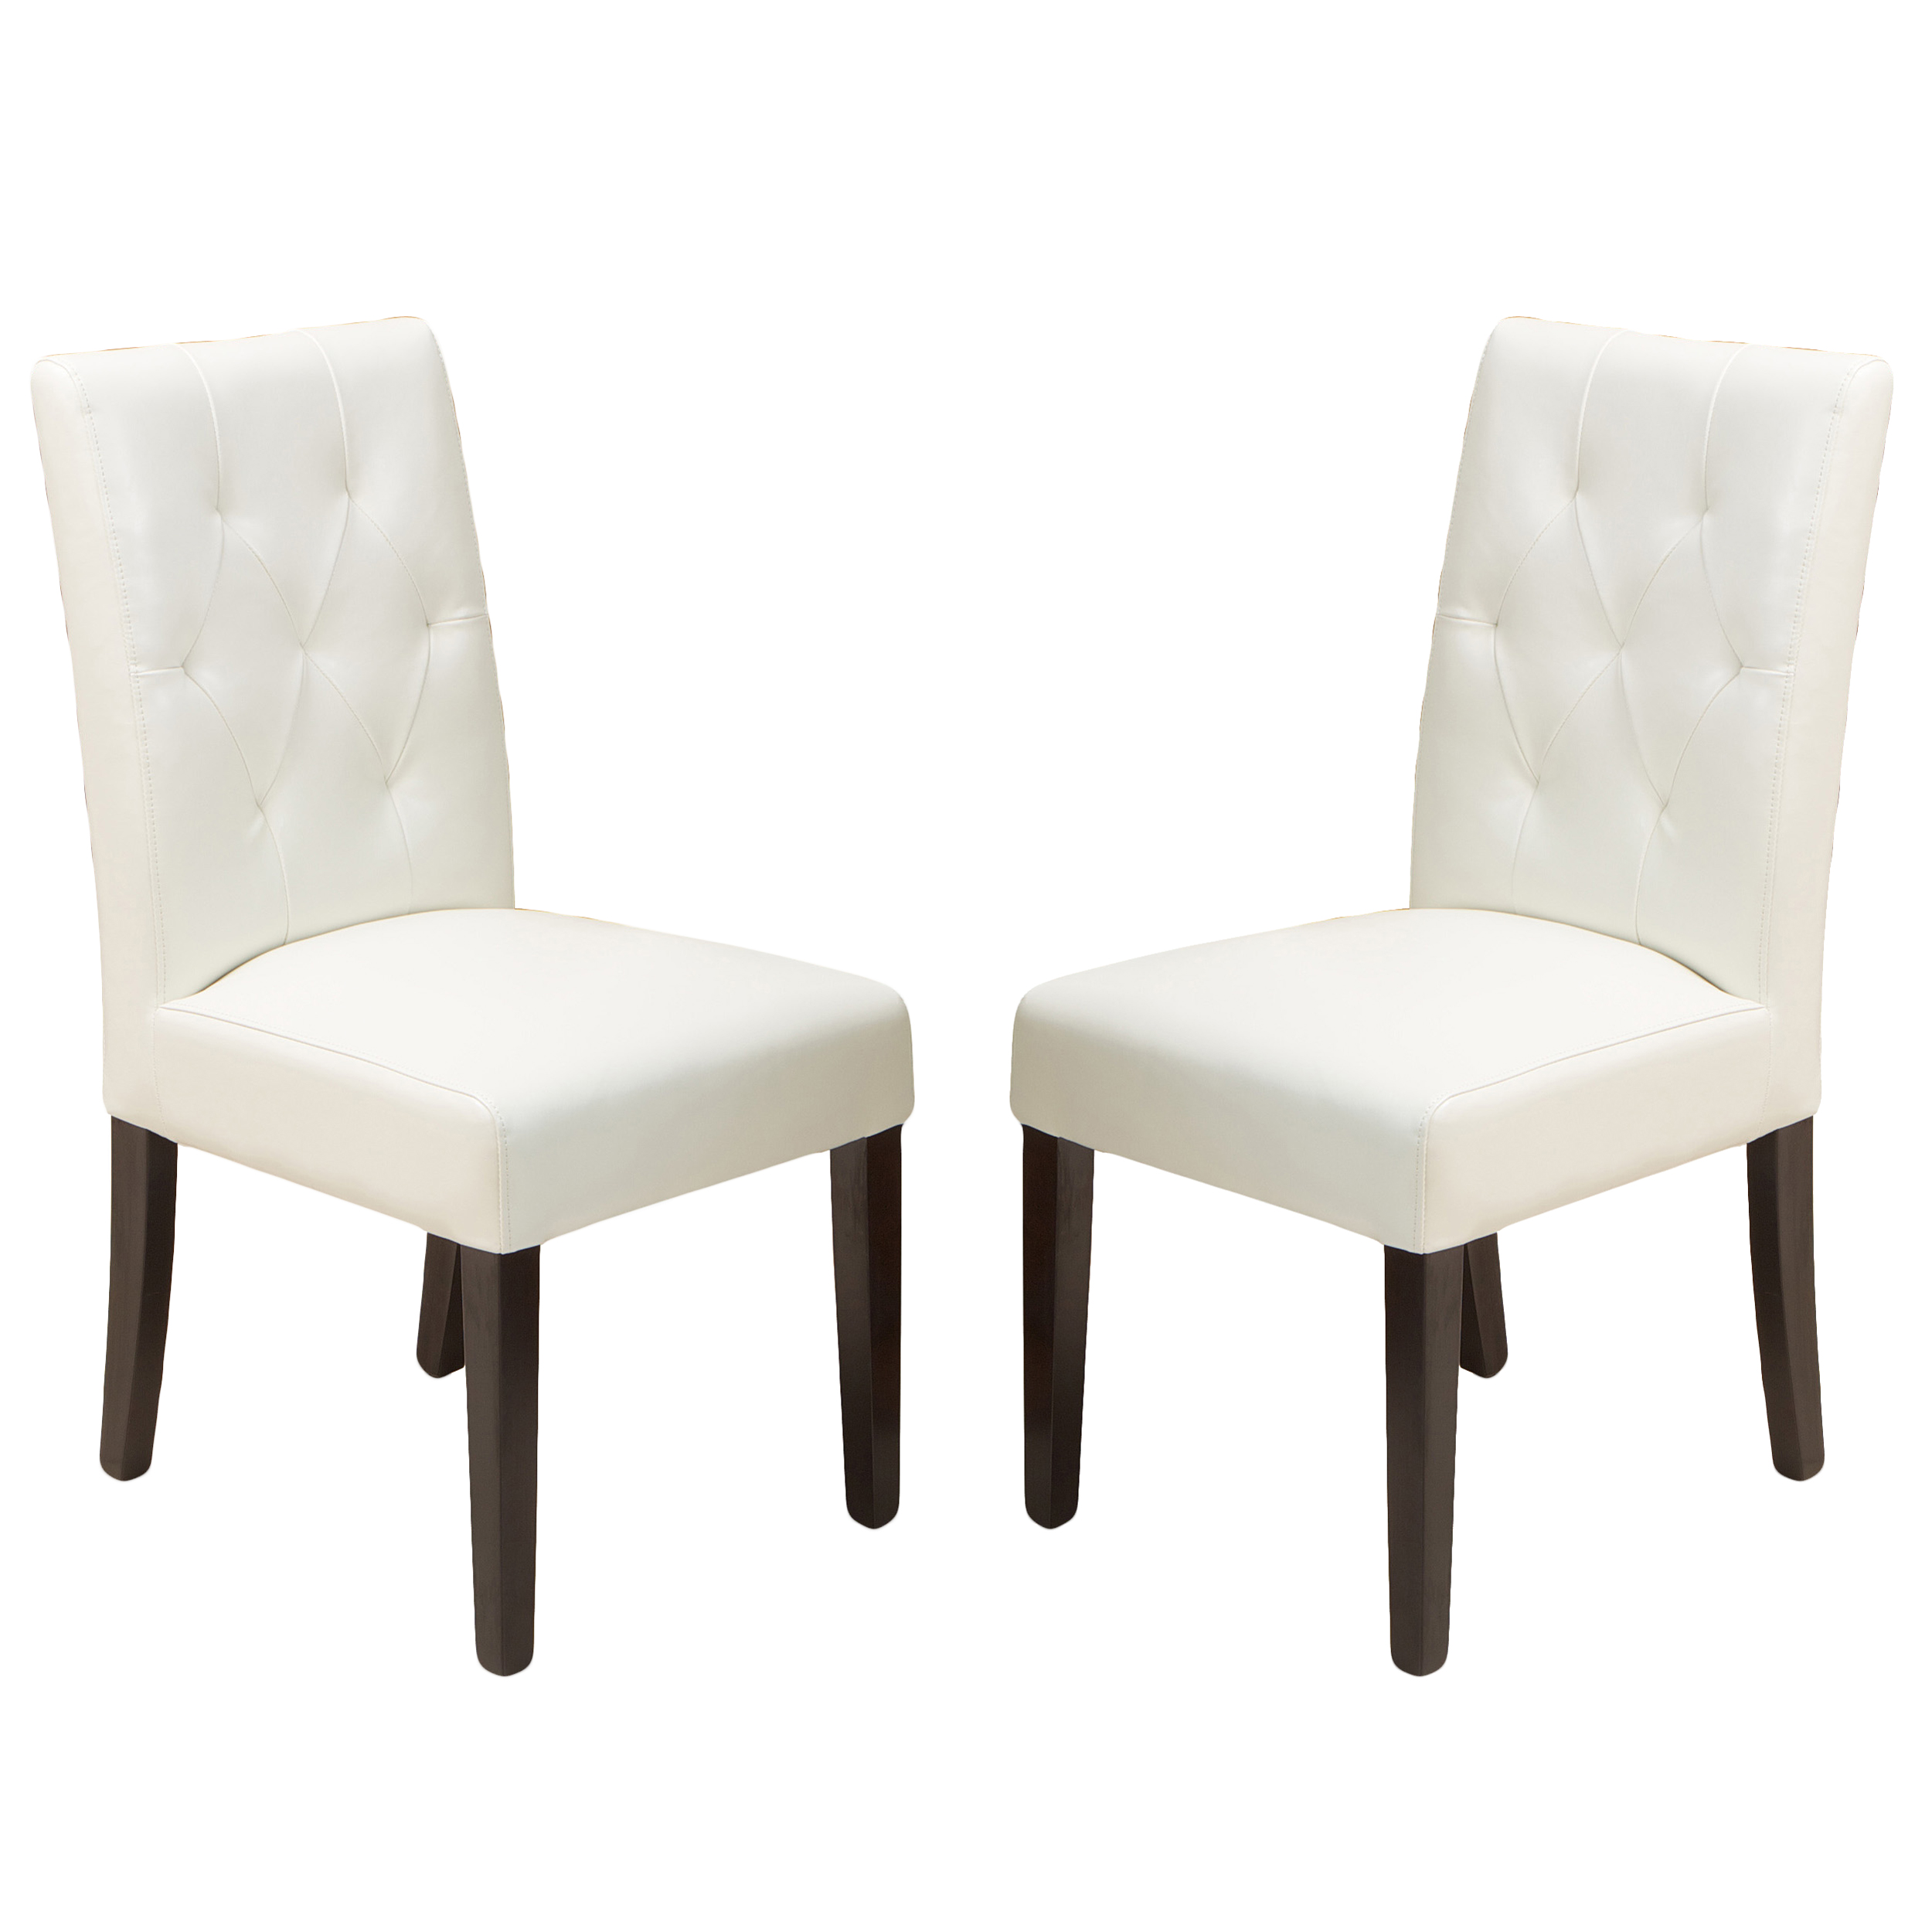 Falo Bonded Leather Ivory Dining Chair (Set of 2) by GDF Studio